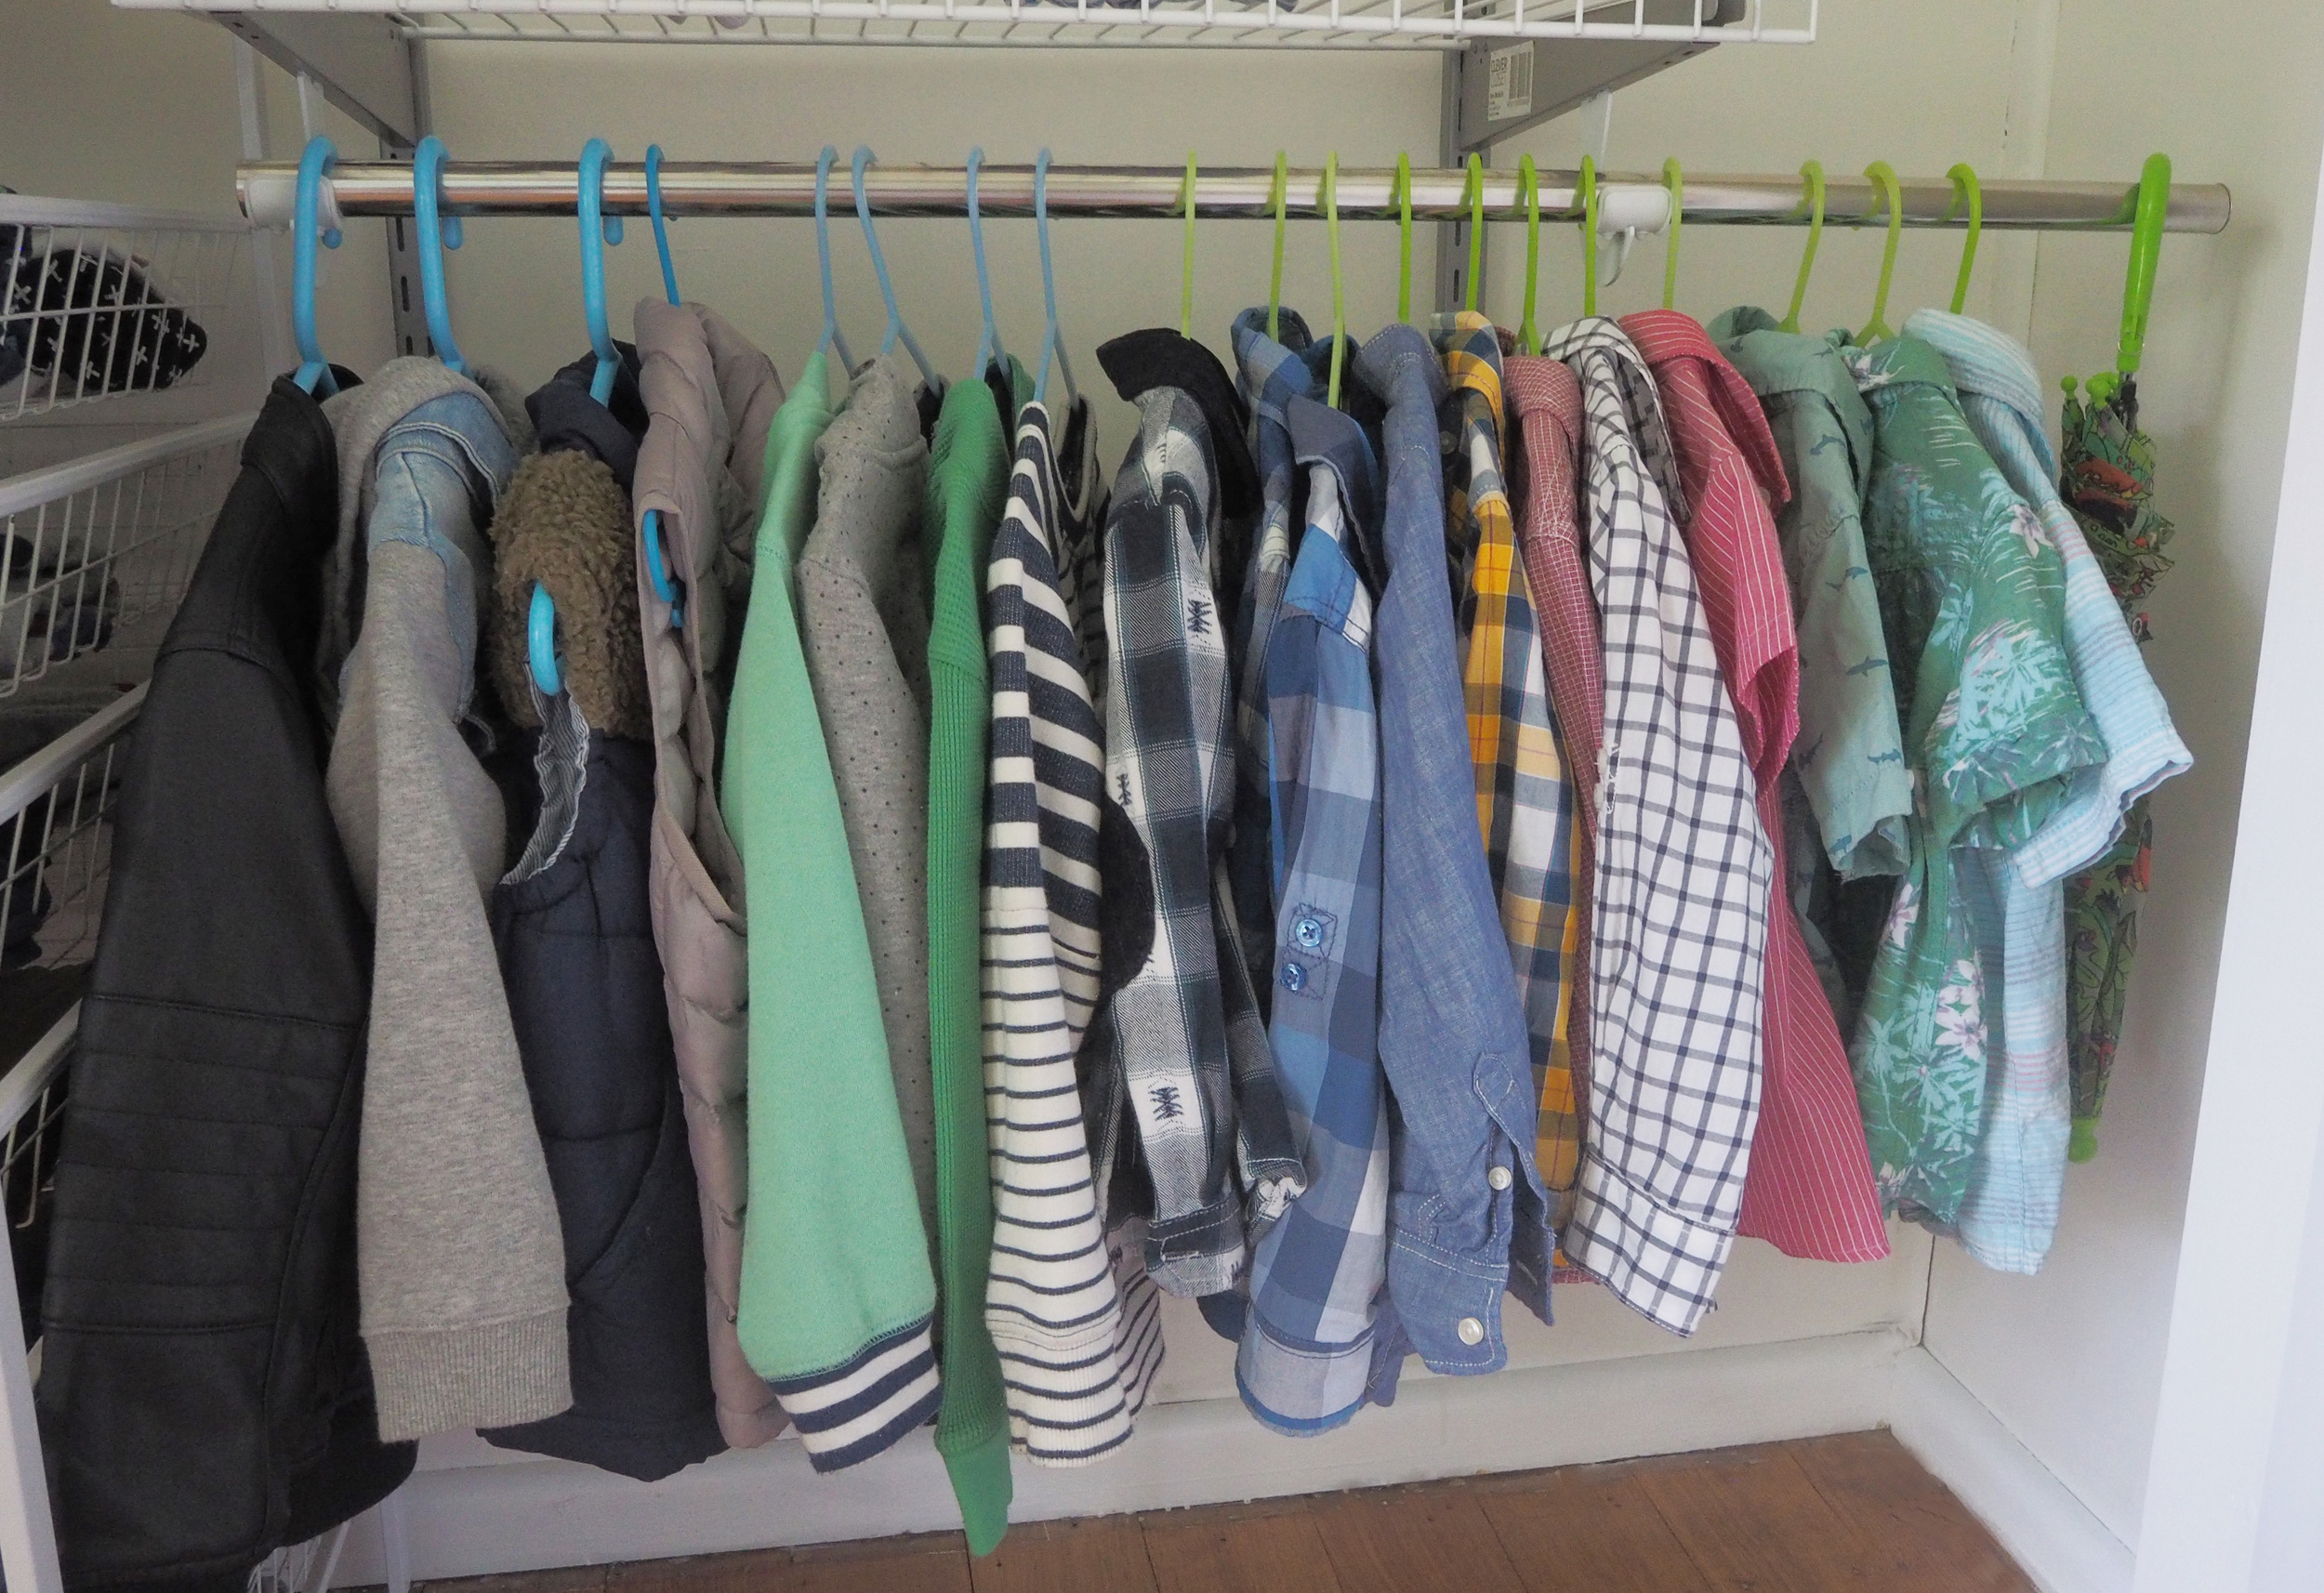 Organising the clothes in the wardrobe for our son's new bedroom - The Organised You